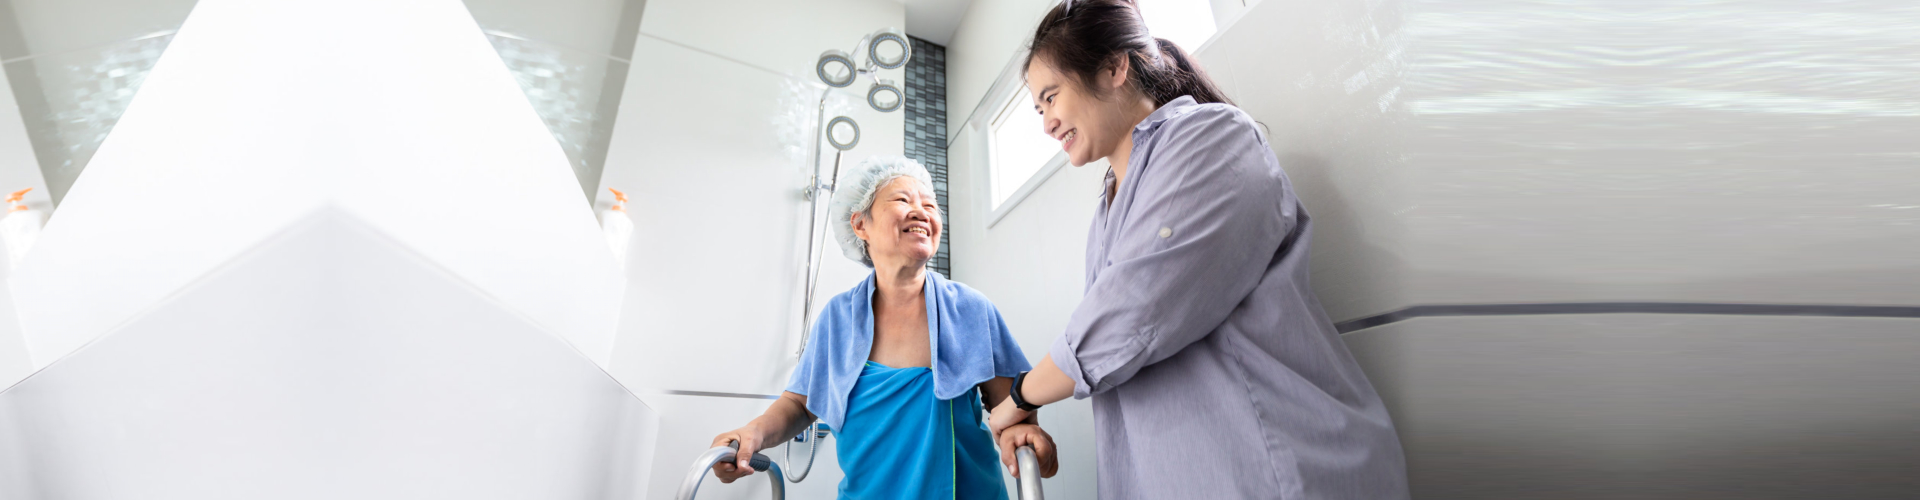 female care assistant service support senior woman taking a shower in bathroom